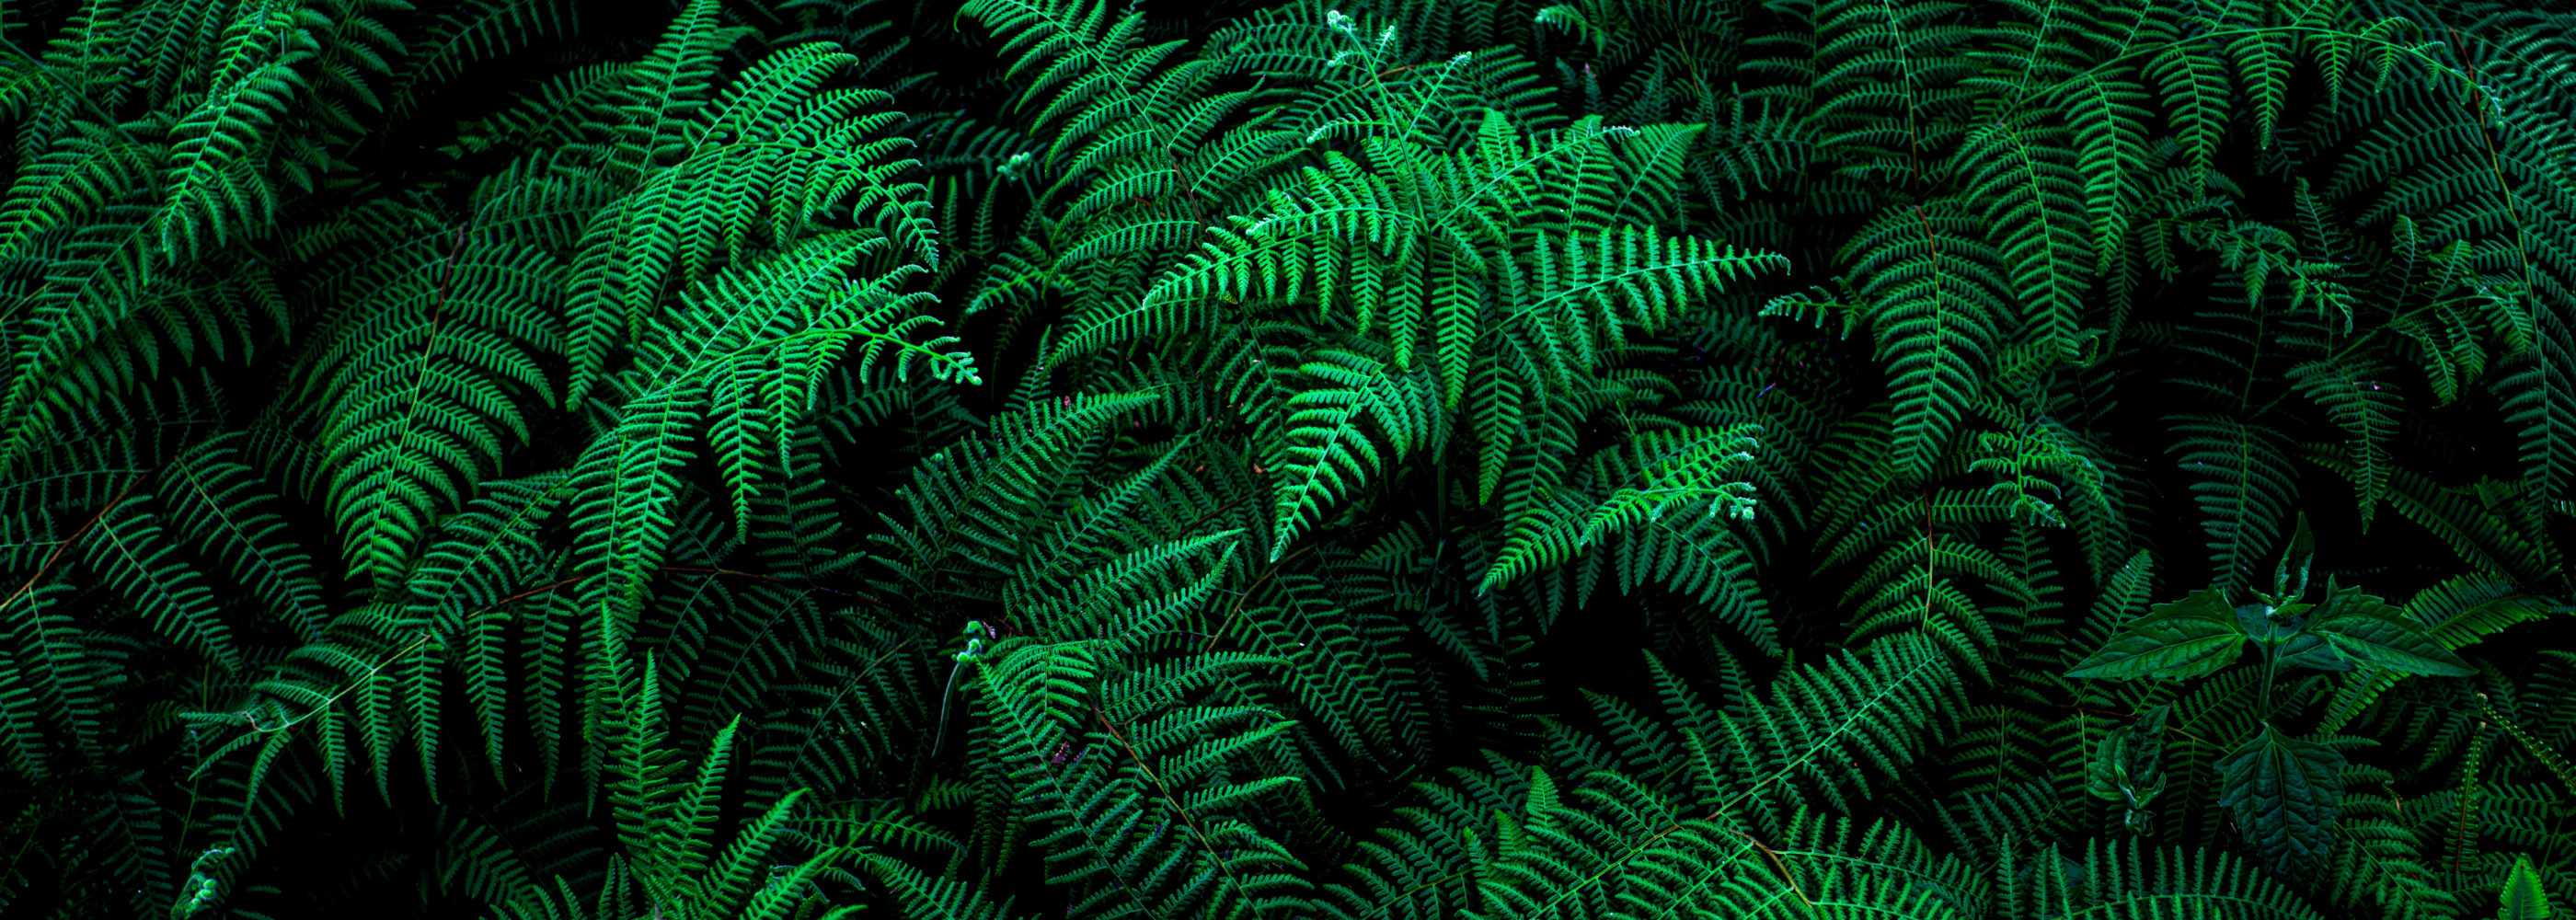 abstract green fern leaf fractal texture, nature background, tropical leaf